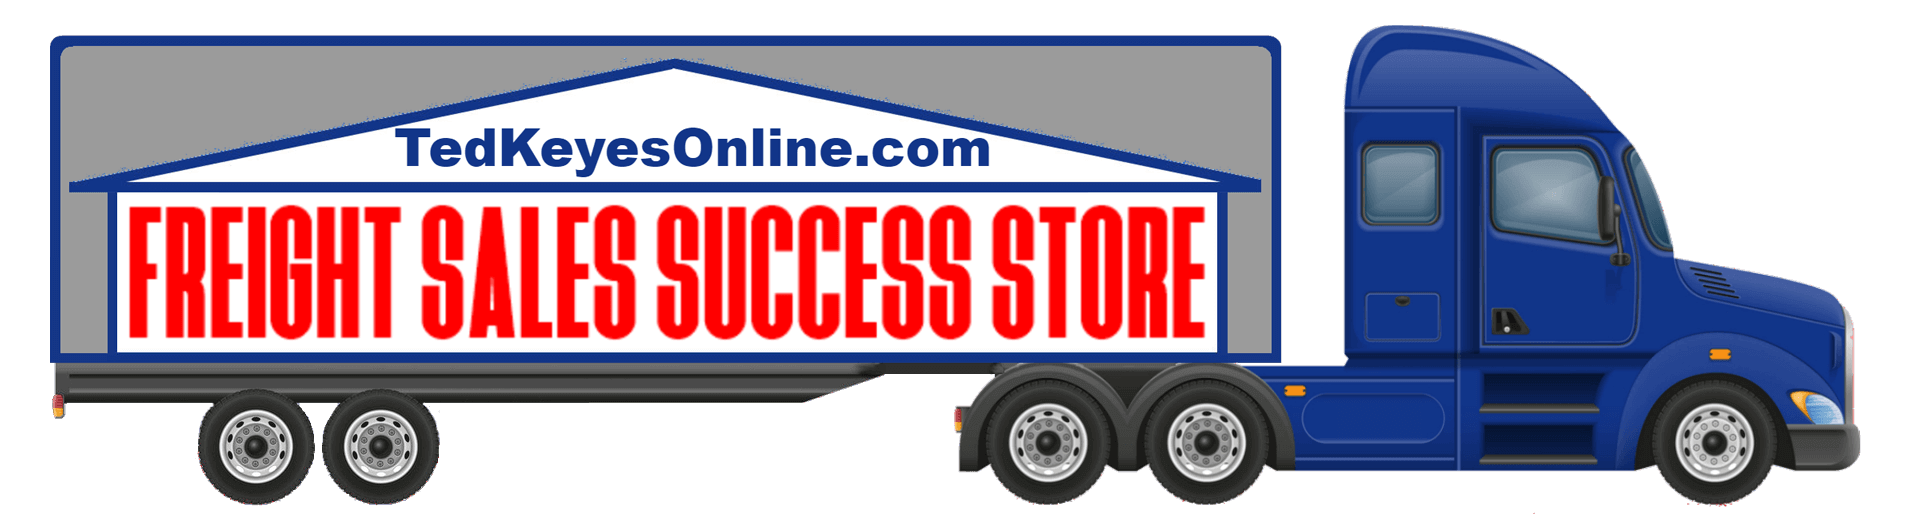 Ted Keyes' Freight Sales Success Store for successful Freight Training